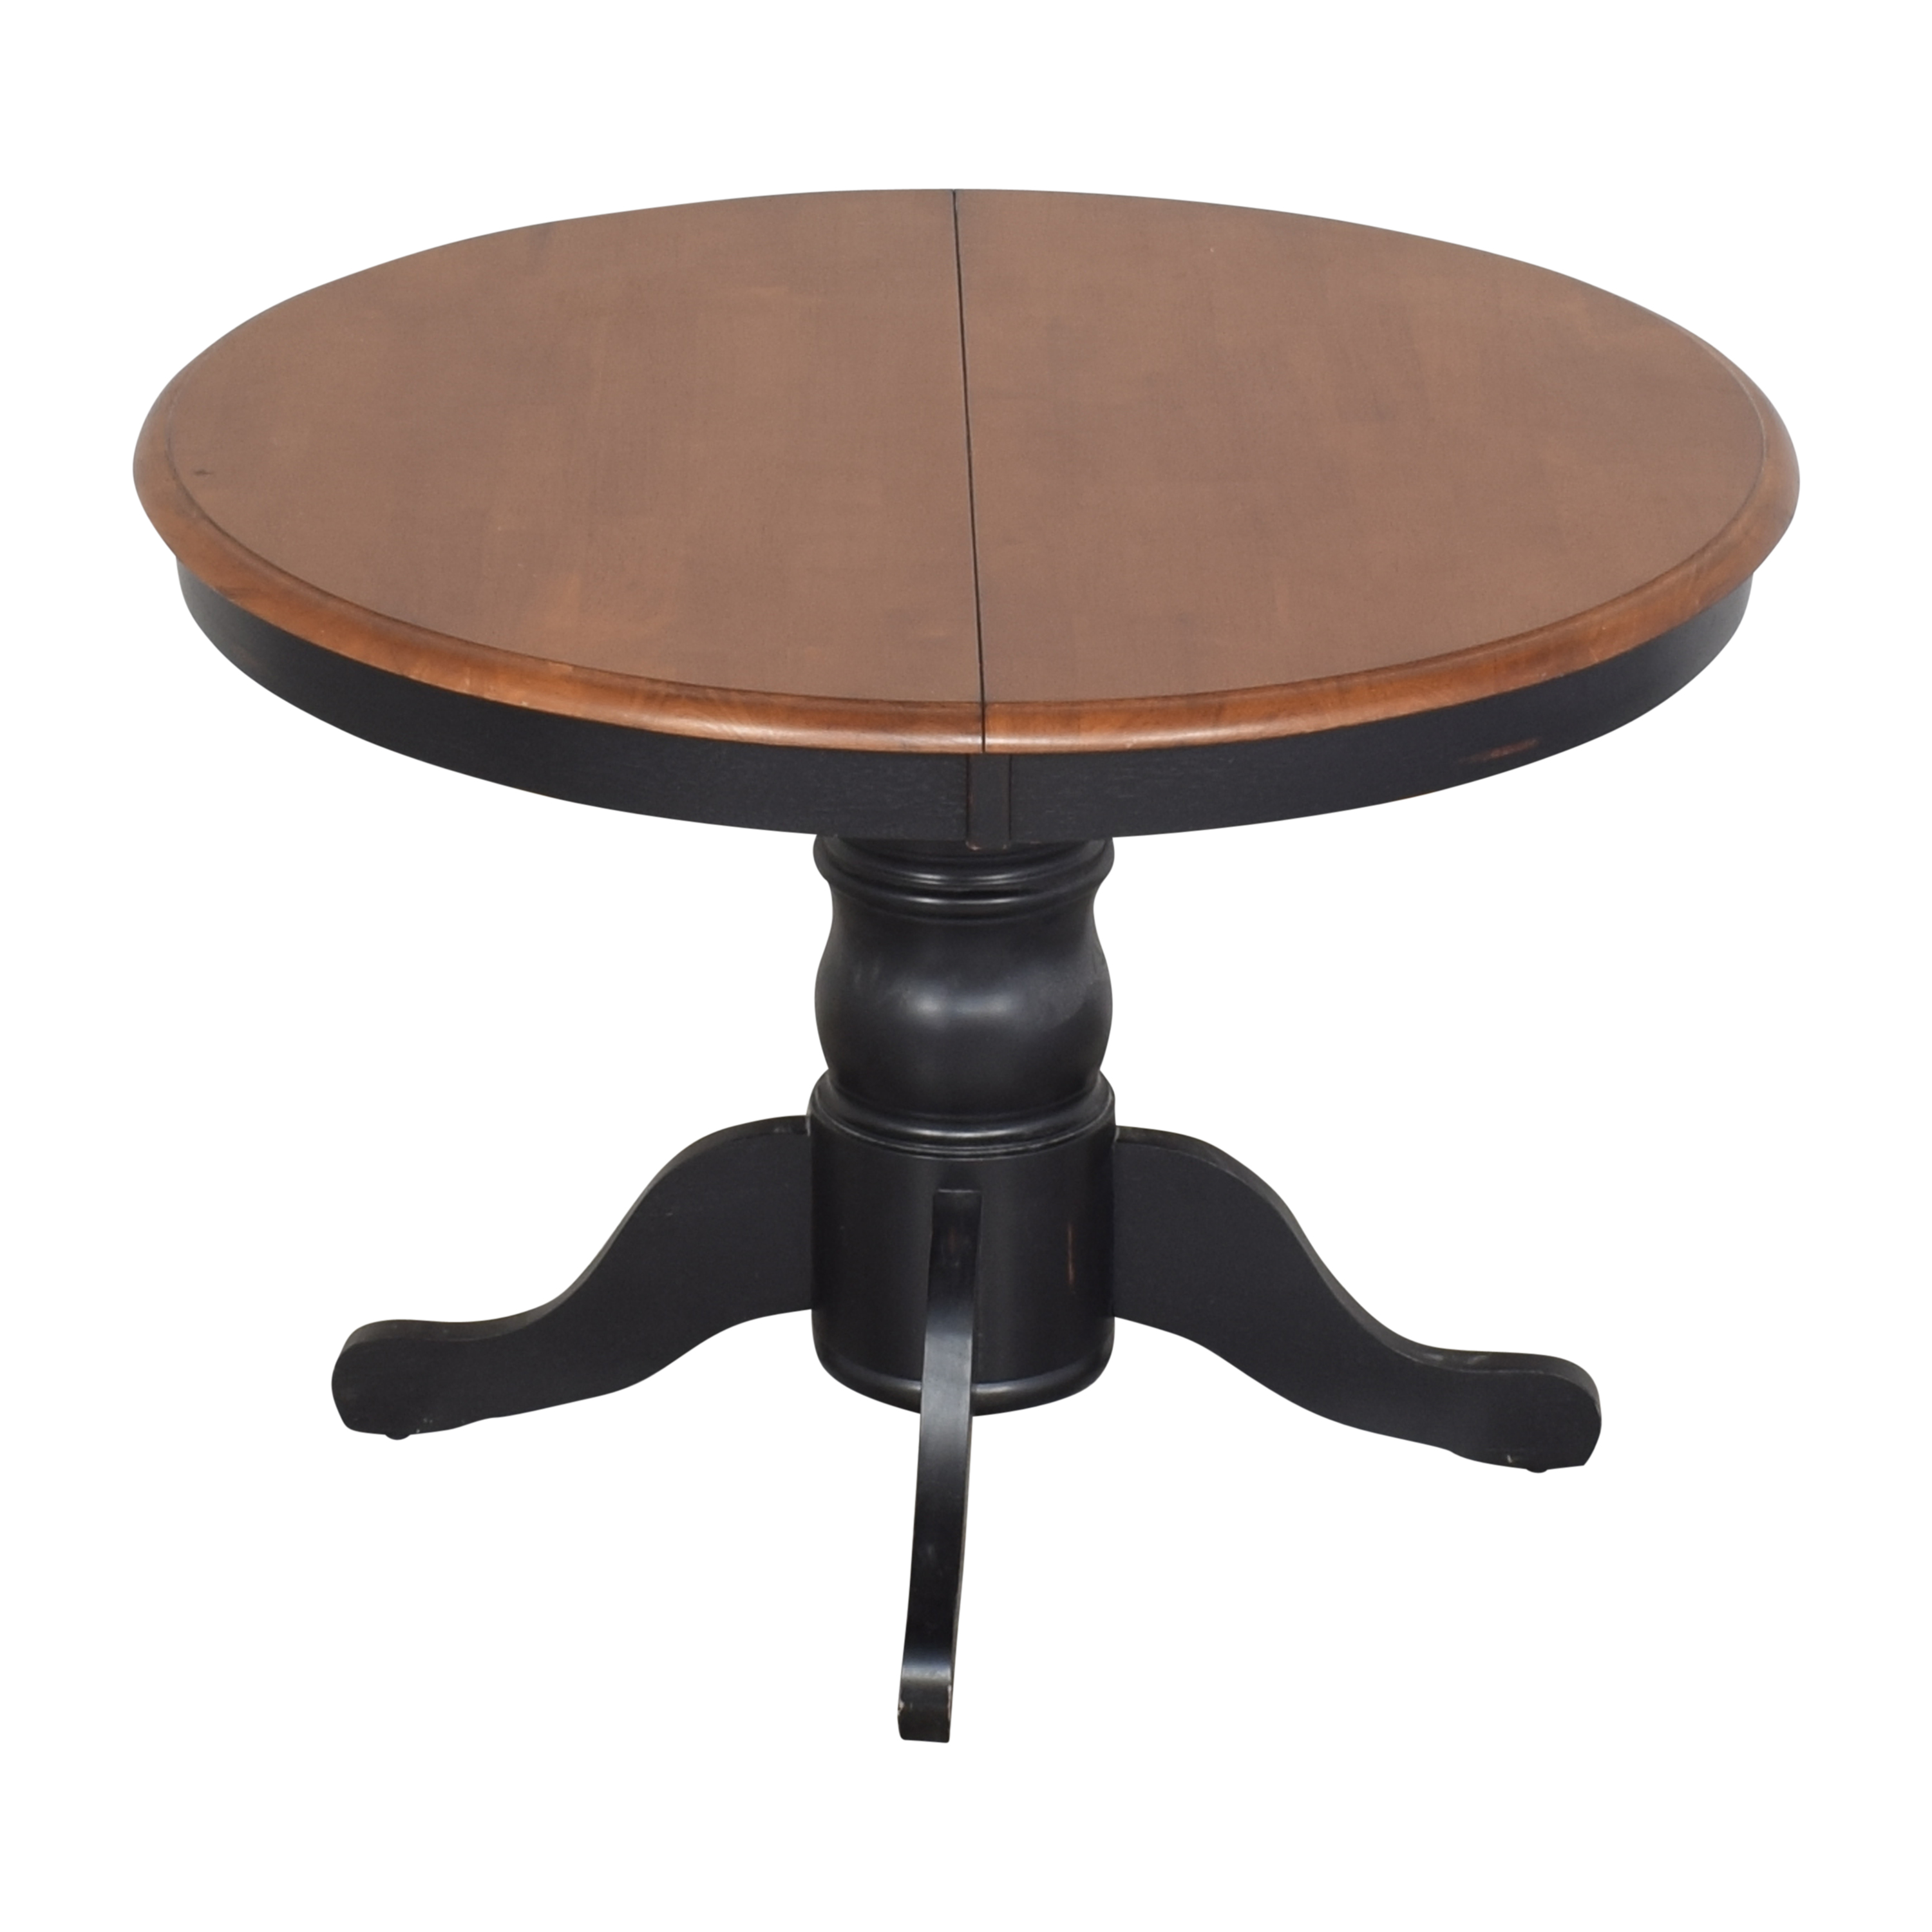 Bloomingdale's Round Extendable Dining Table sale